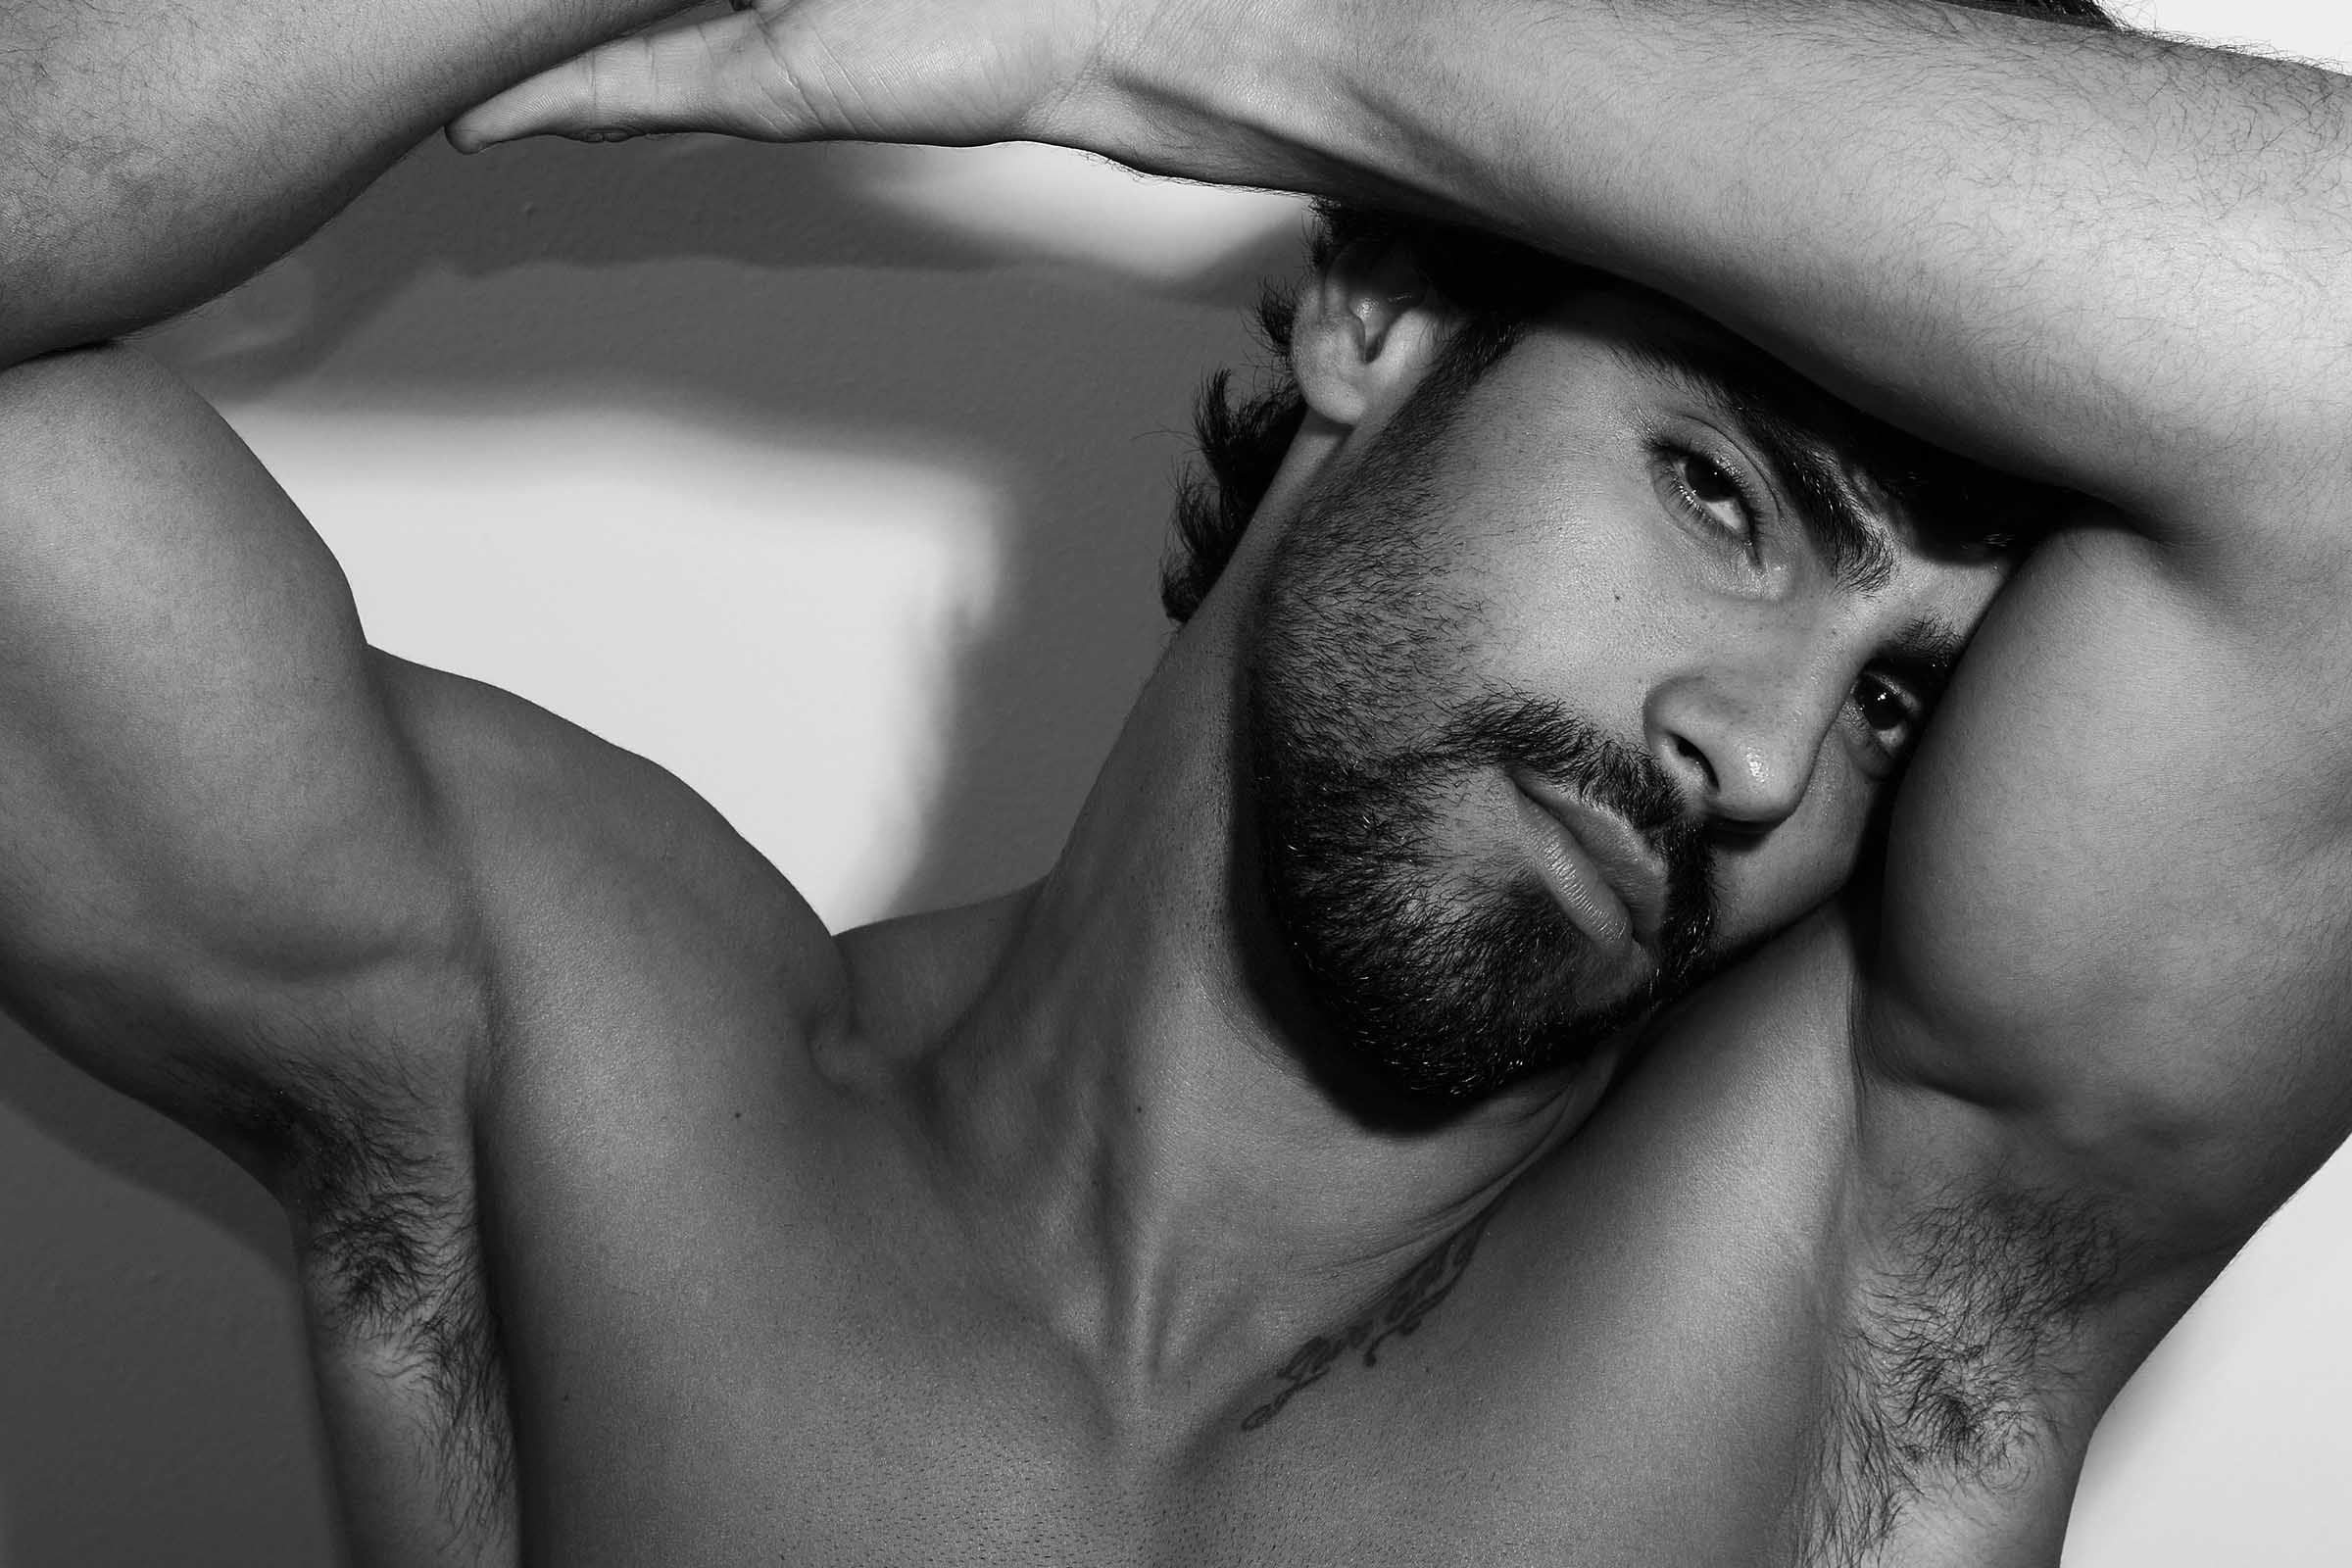 Bruno Krause by Beto Maia for Brazilian Male Model